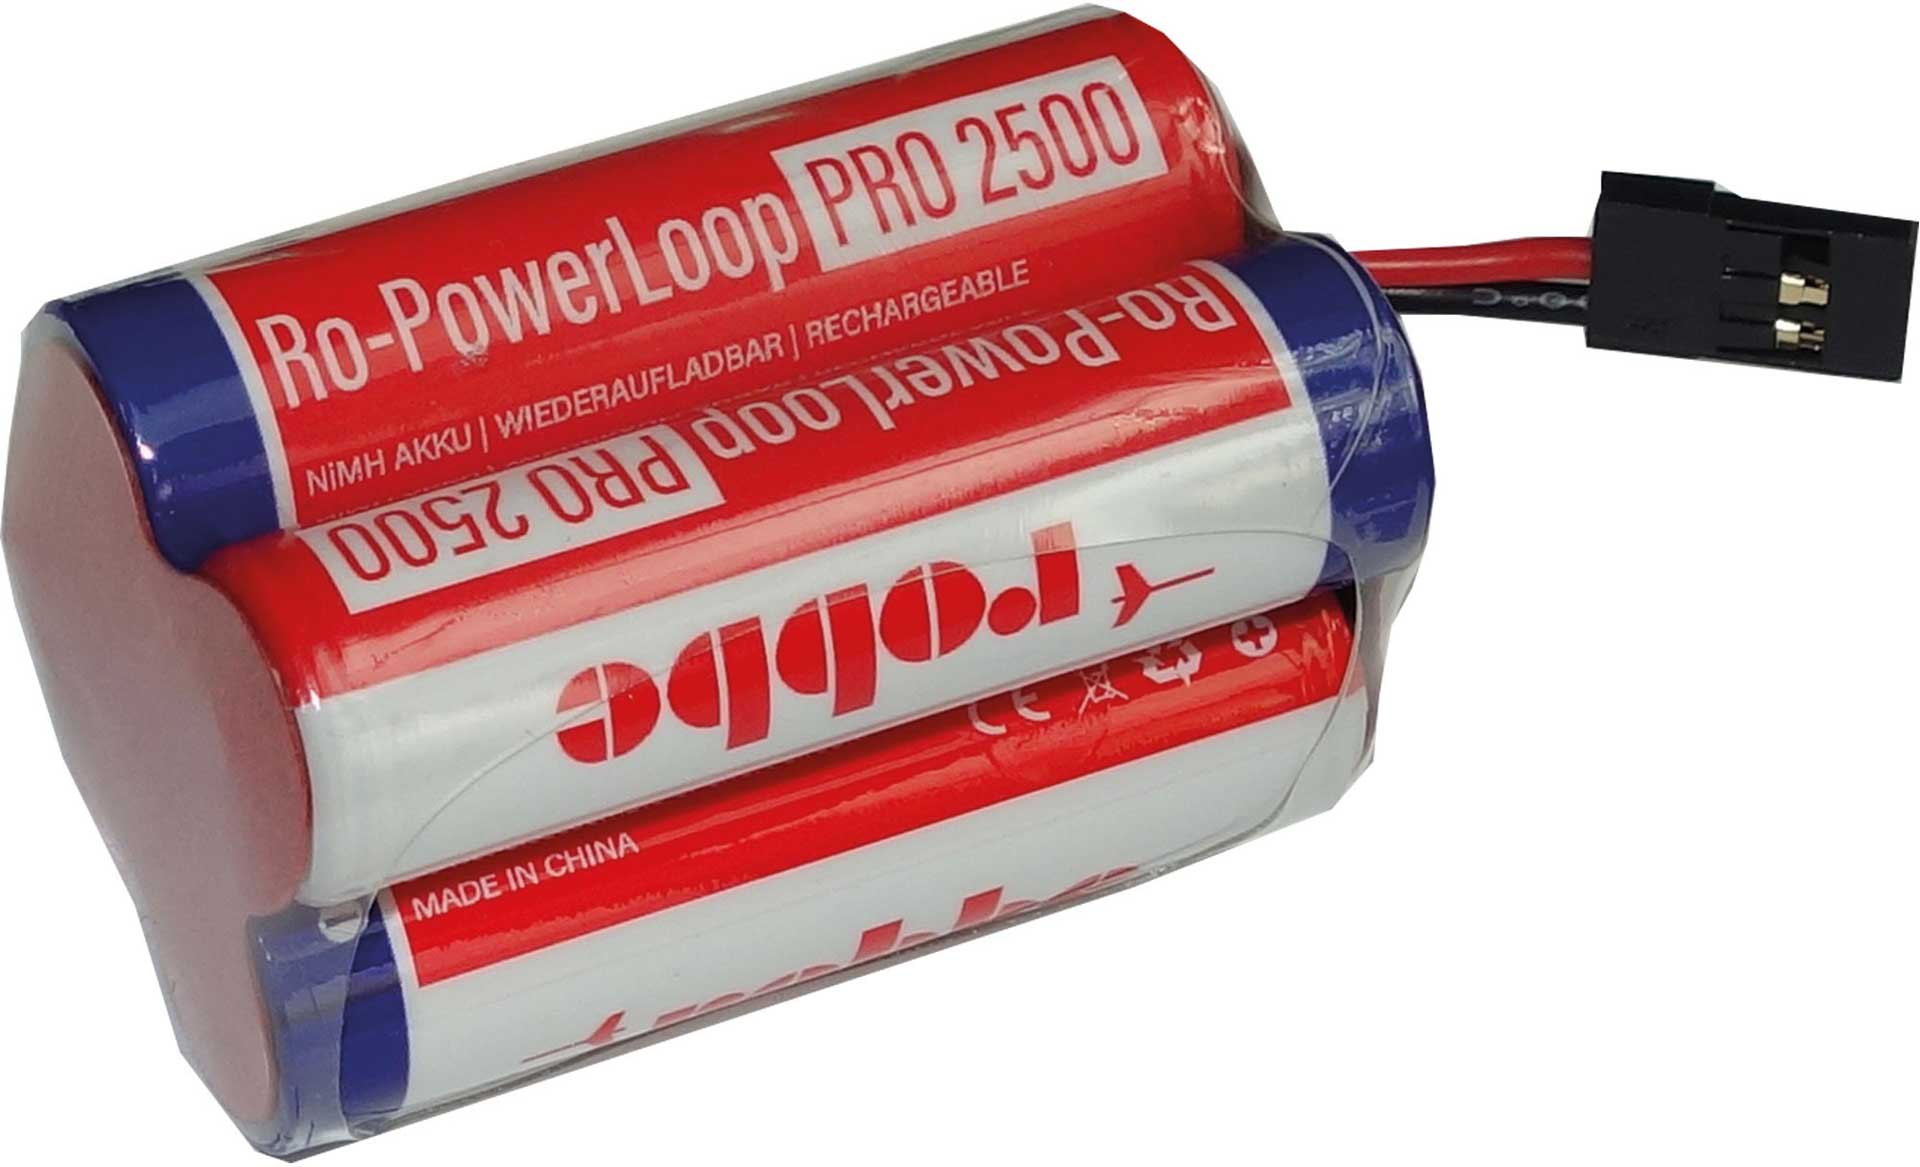 ROBBE RO-POWER LOOP MIGNON AA 2500 MAH 4.8 V RECEIVER BATTERY WITH JR CABLE, CUBE